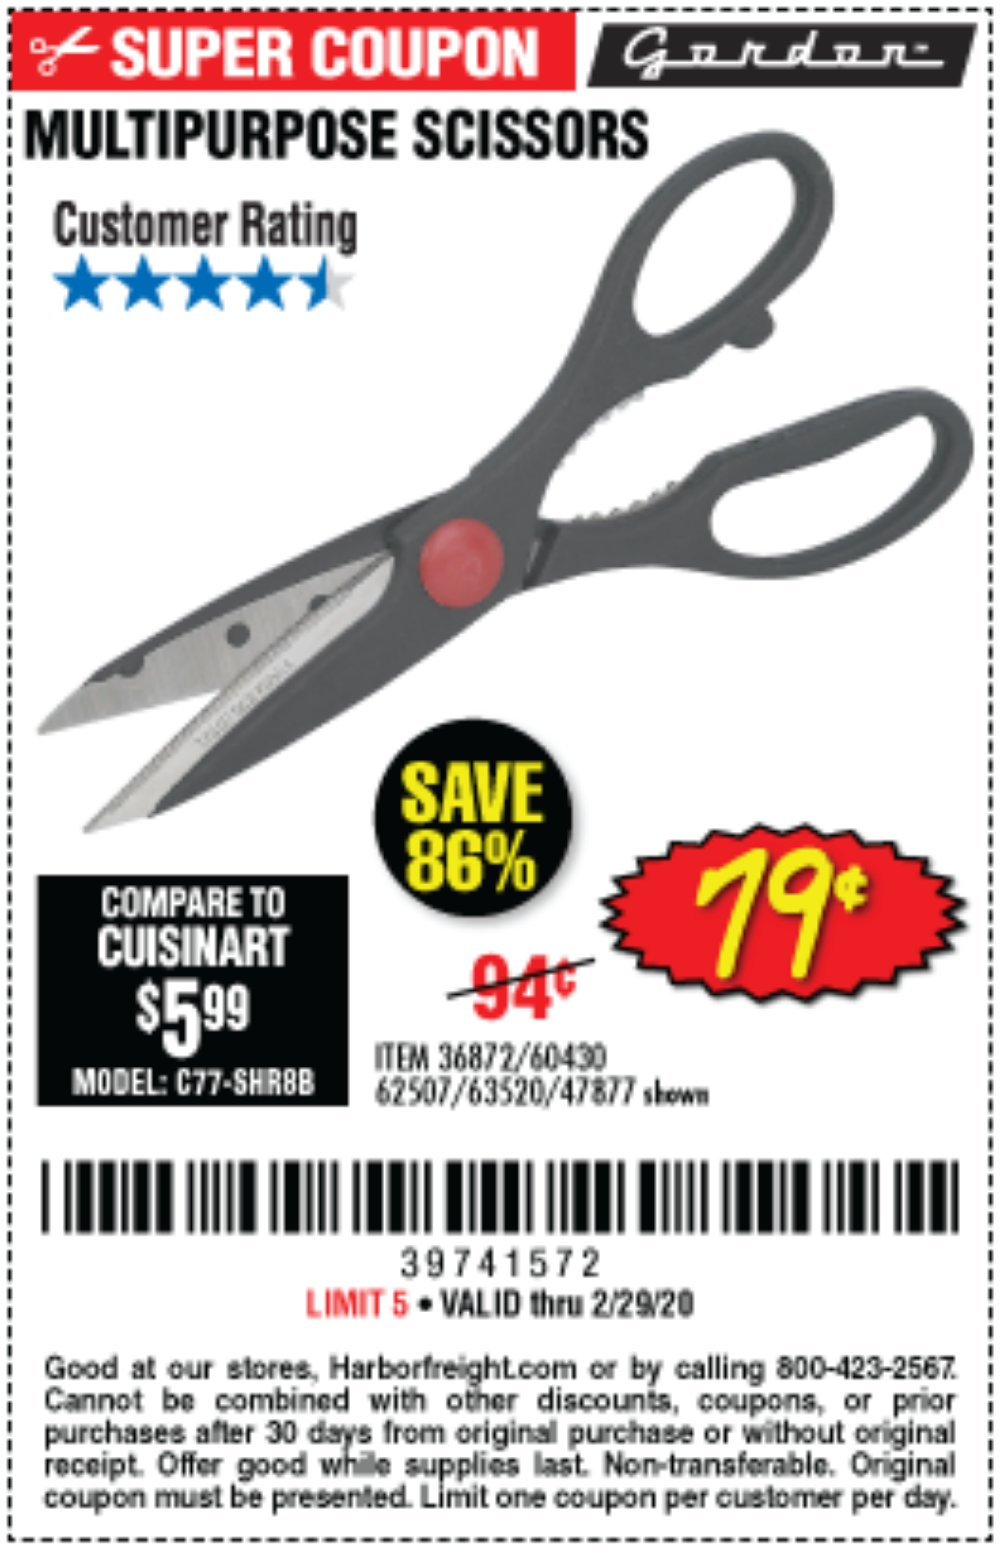 Harbor Freight Coupon, HF Coupons - 36872